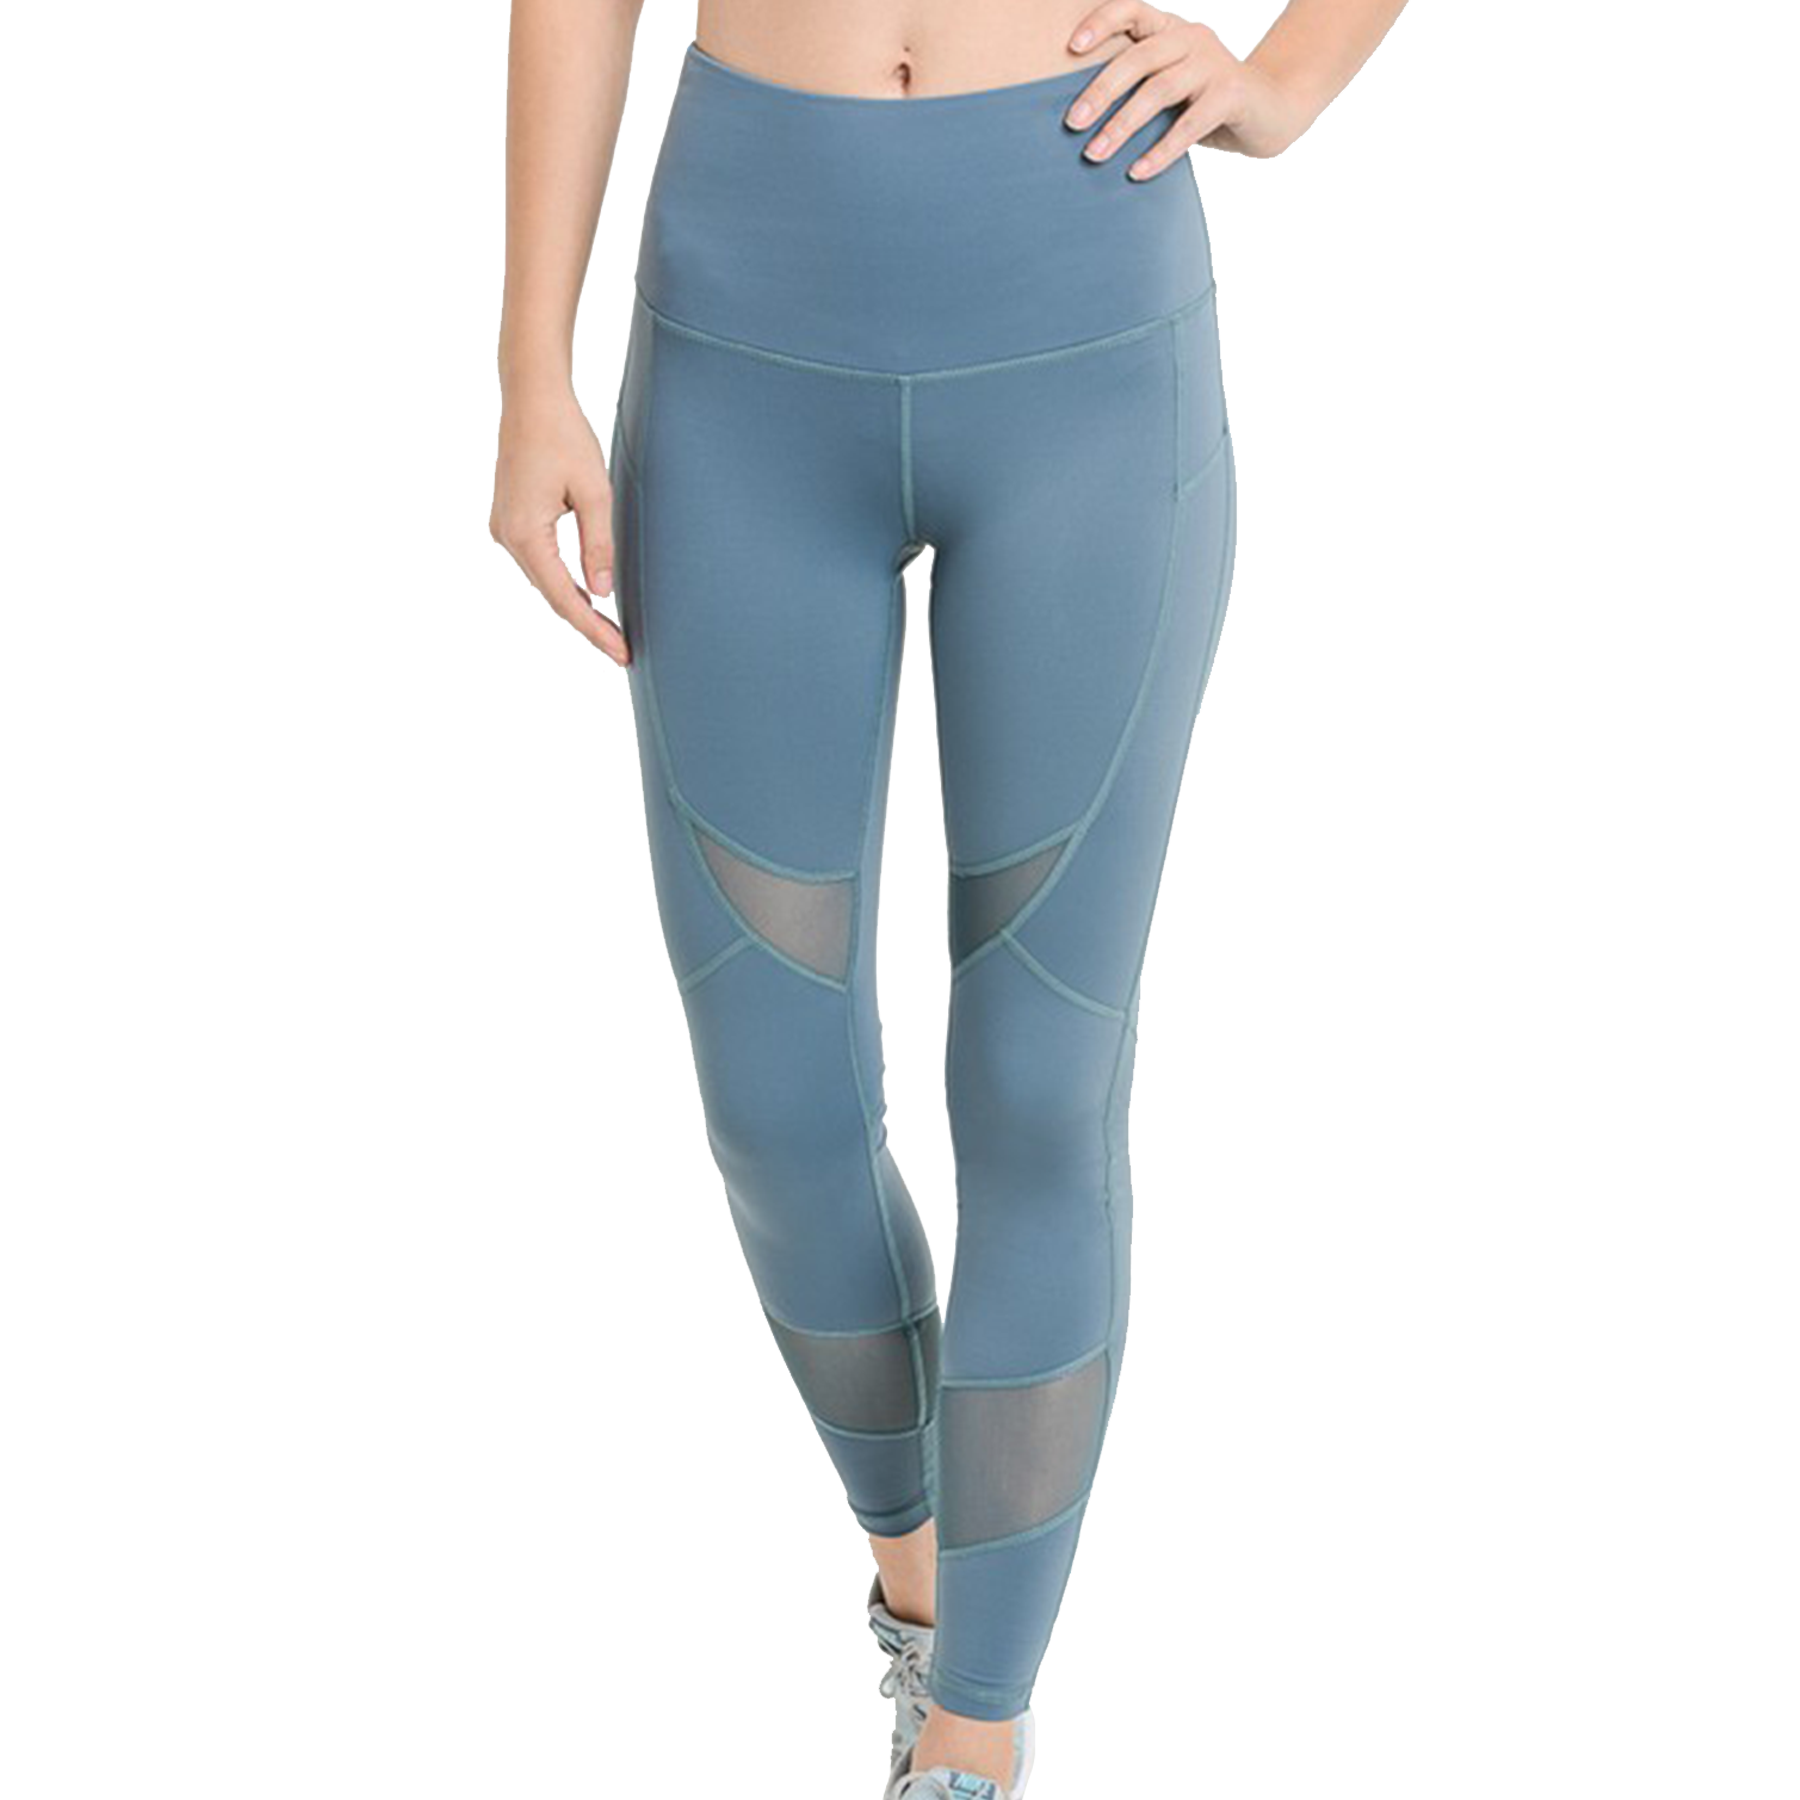 Slate Blue Cross Mesh Leggings